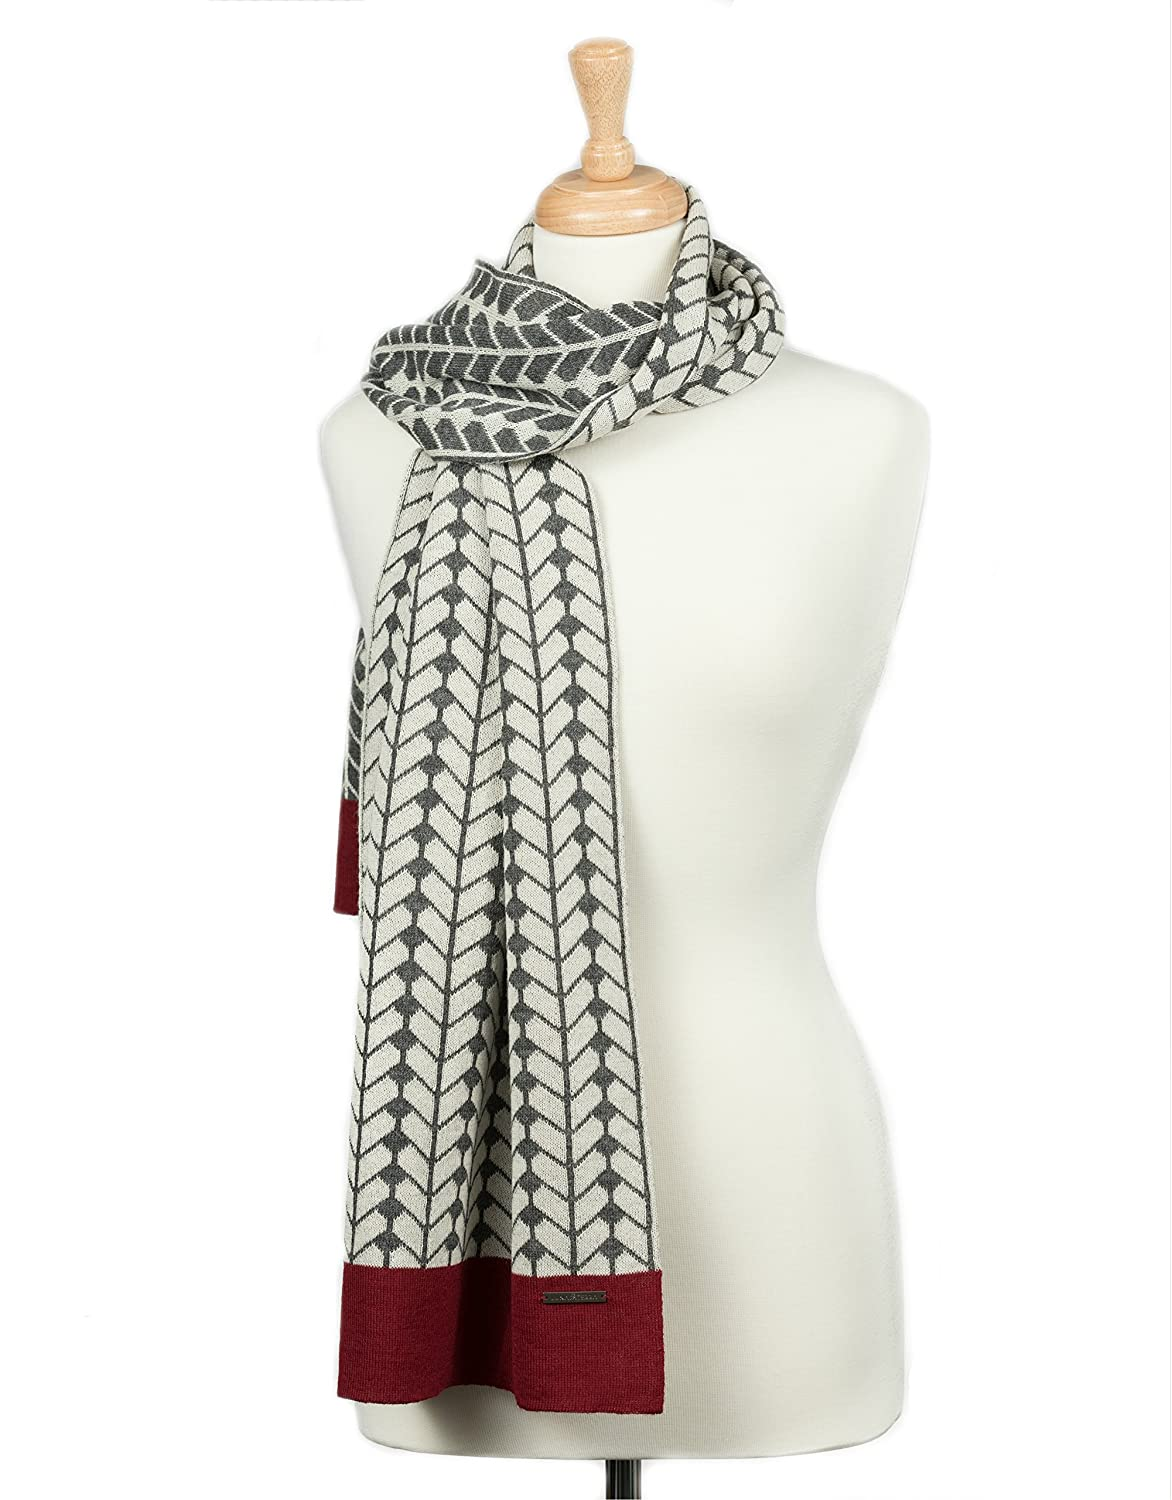 TORINO Handmade Knitted 100% Baby Alpaca Wrap Scarf for Women (Oxford Grey/Ivory/Red)